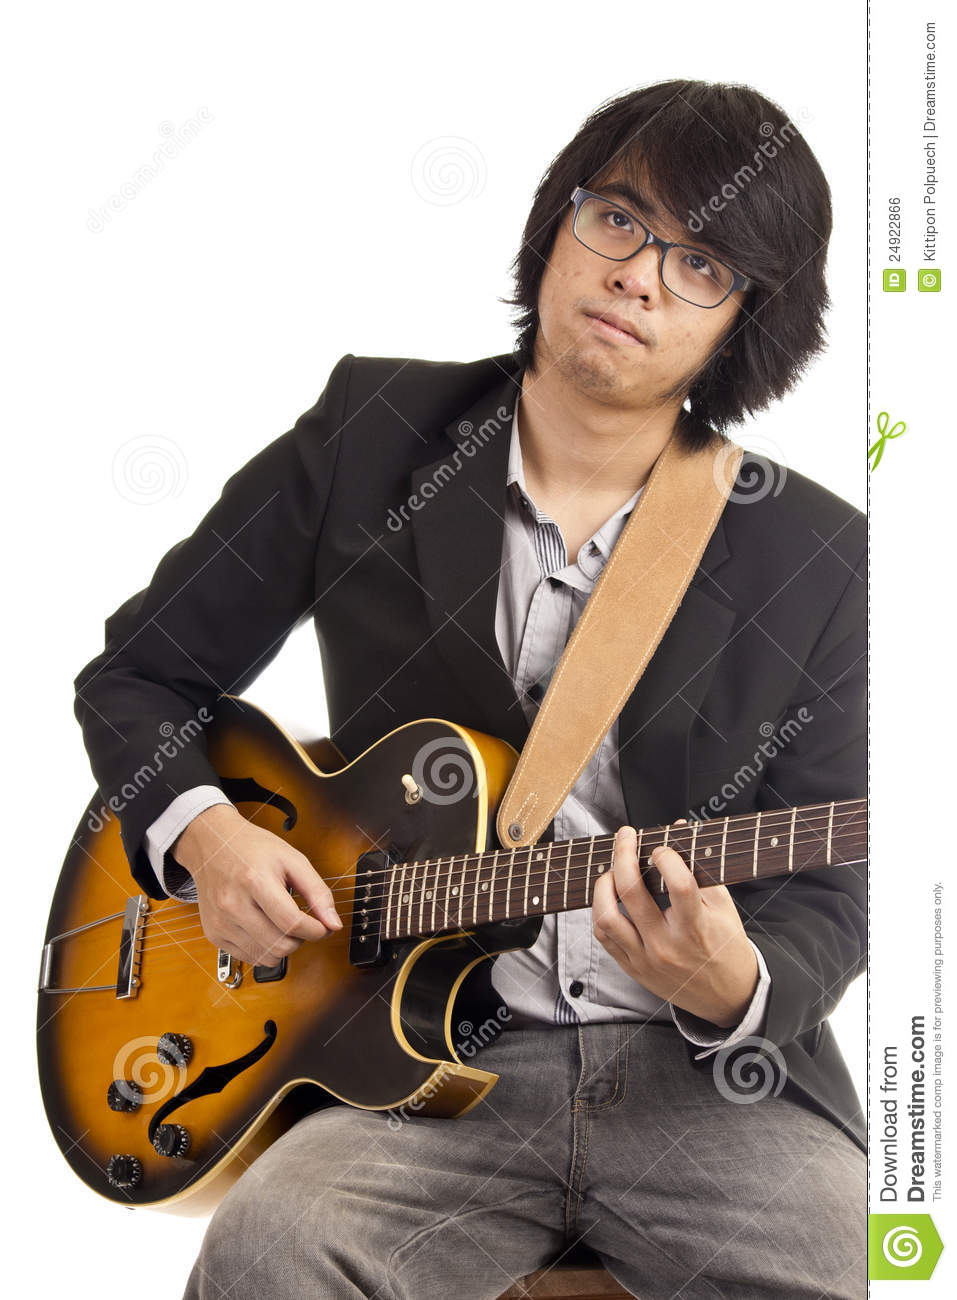 asian young musician royalty free stock image image